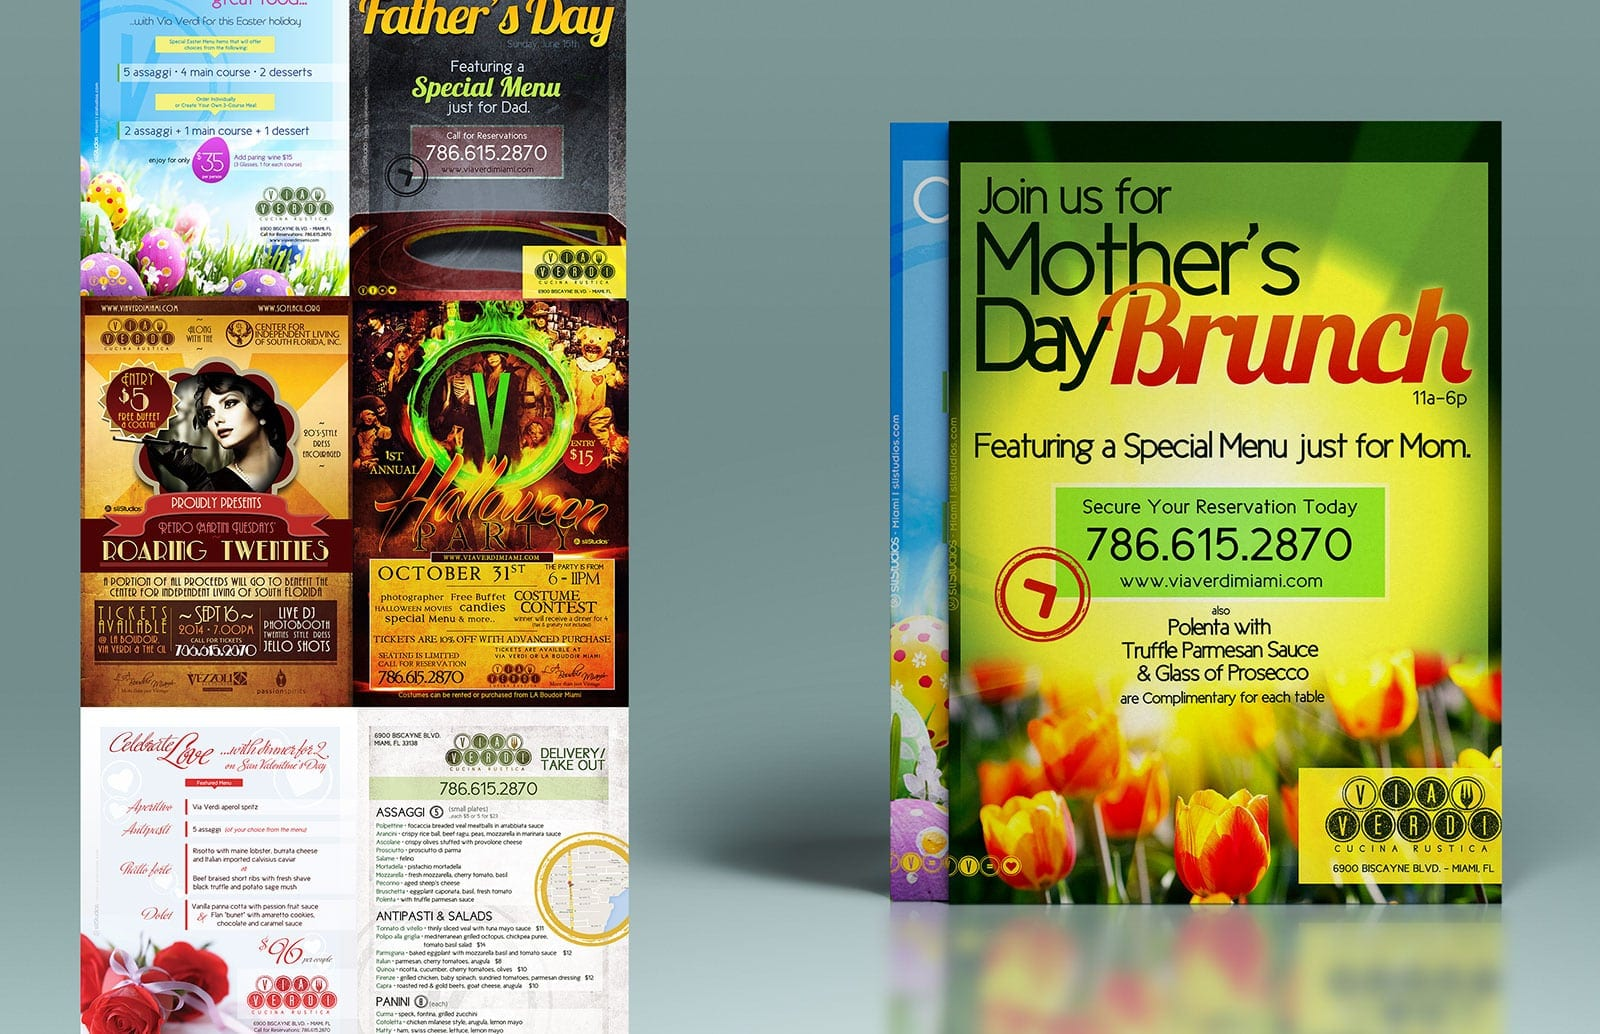 Via Verdi Cucina Rustica - Marketing Flyer Design - Branding - sliStudios - Miami